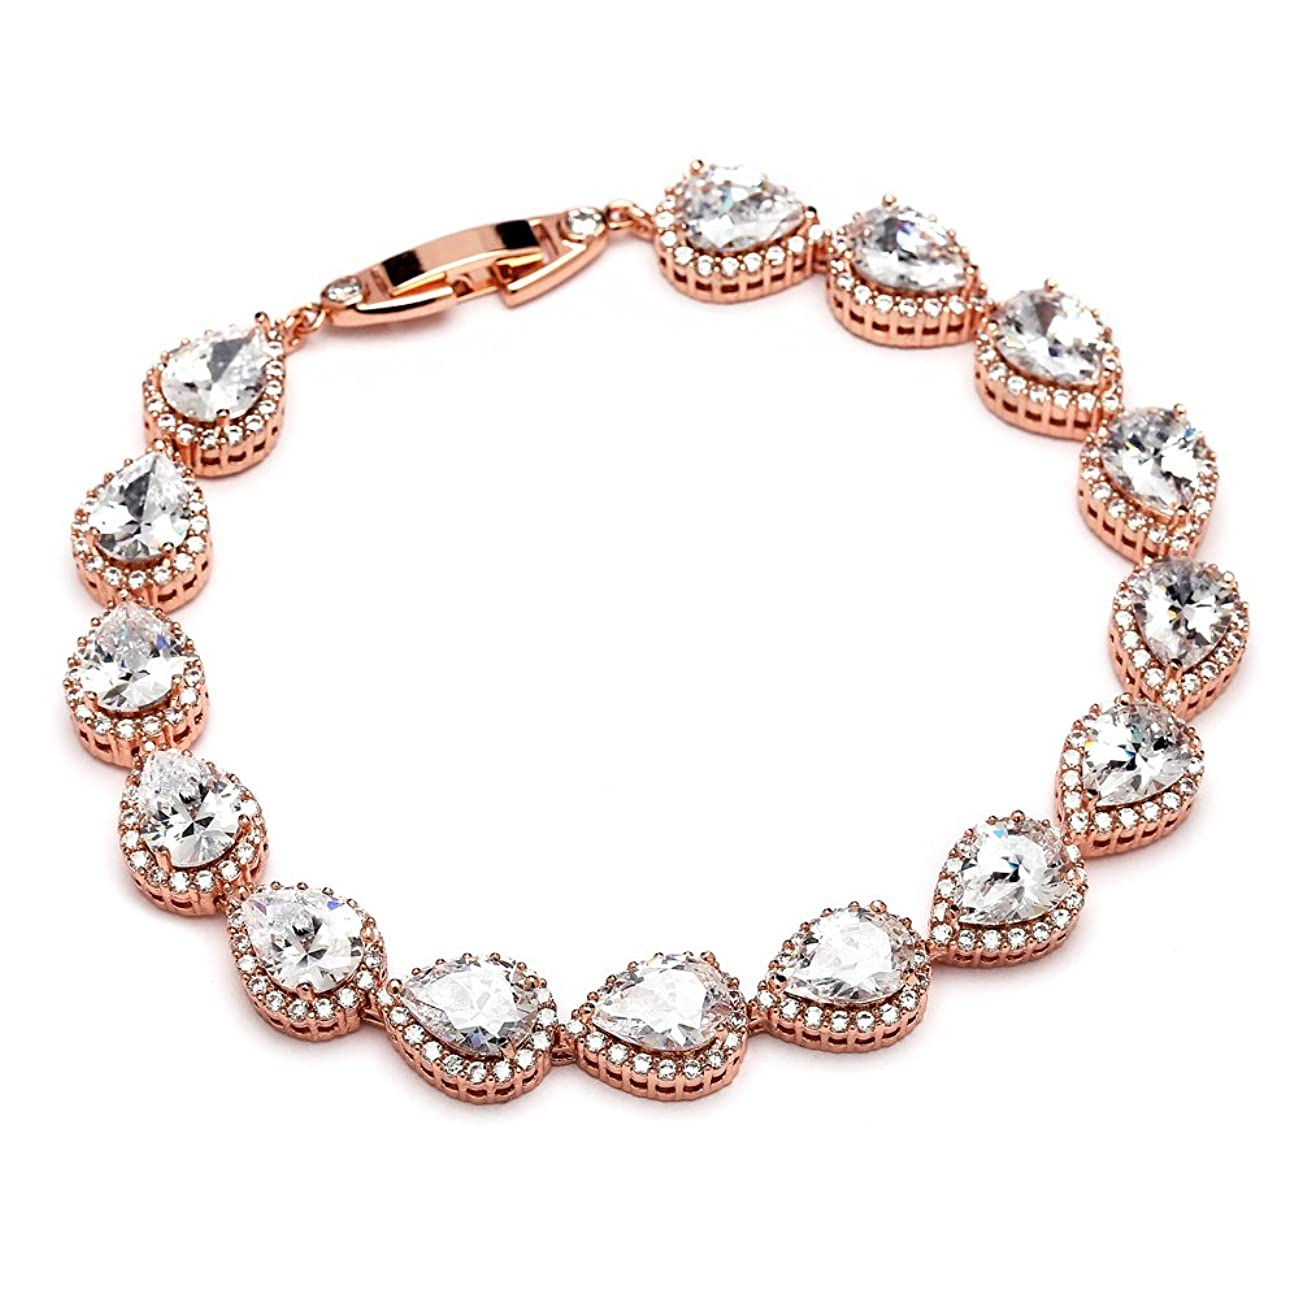 Mariell 14K Rose Gold Plated Pear-Shaped Halo Cubic Zirconia Bridal Tennis Bracelet Wedding Jewelry